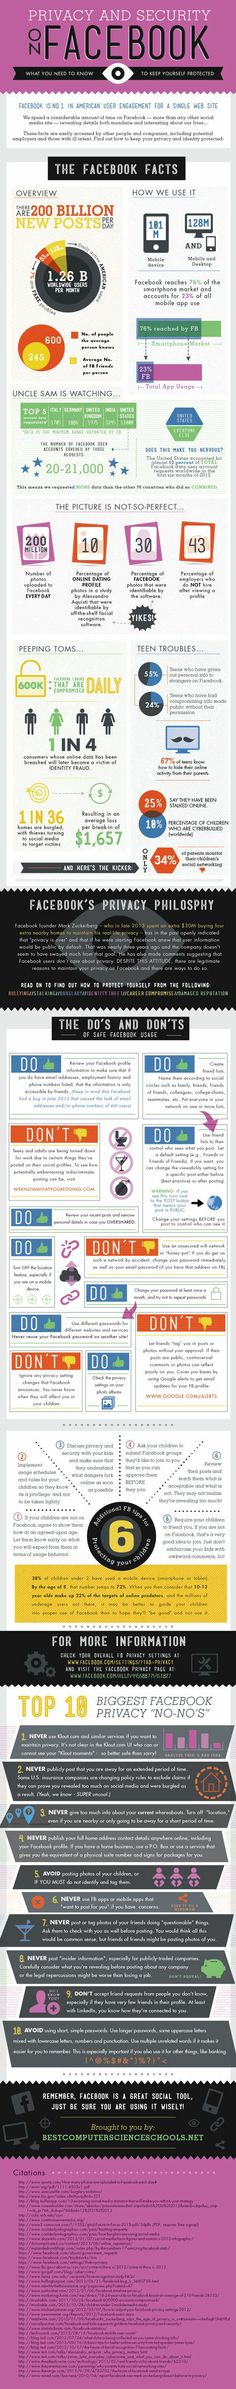 Infographic:  Everything you need to know about privacy on Facebook   visualizing social media